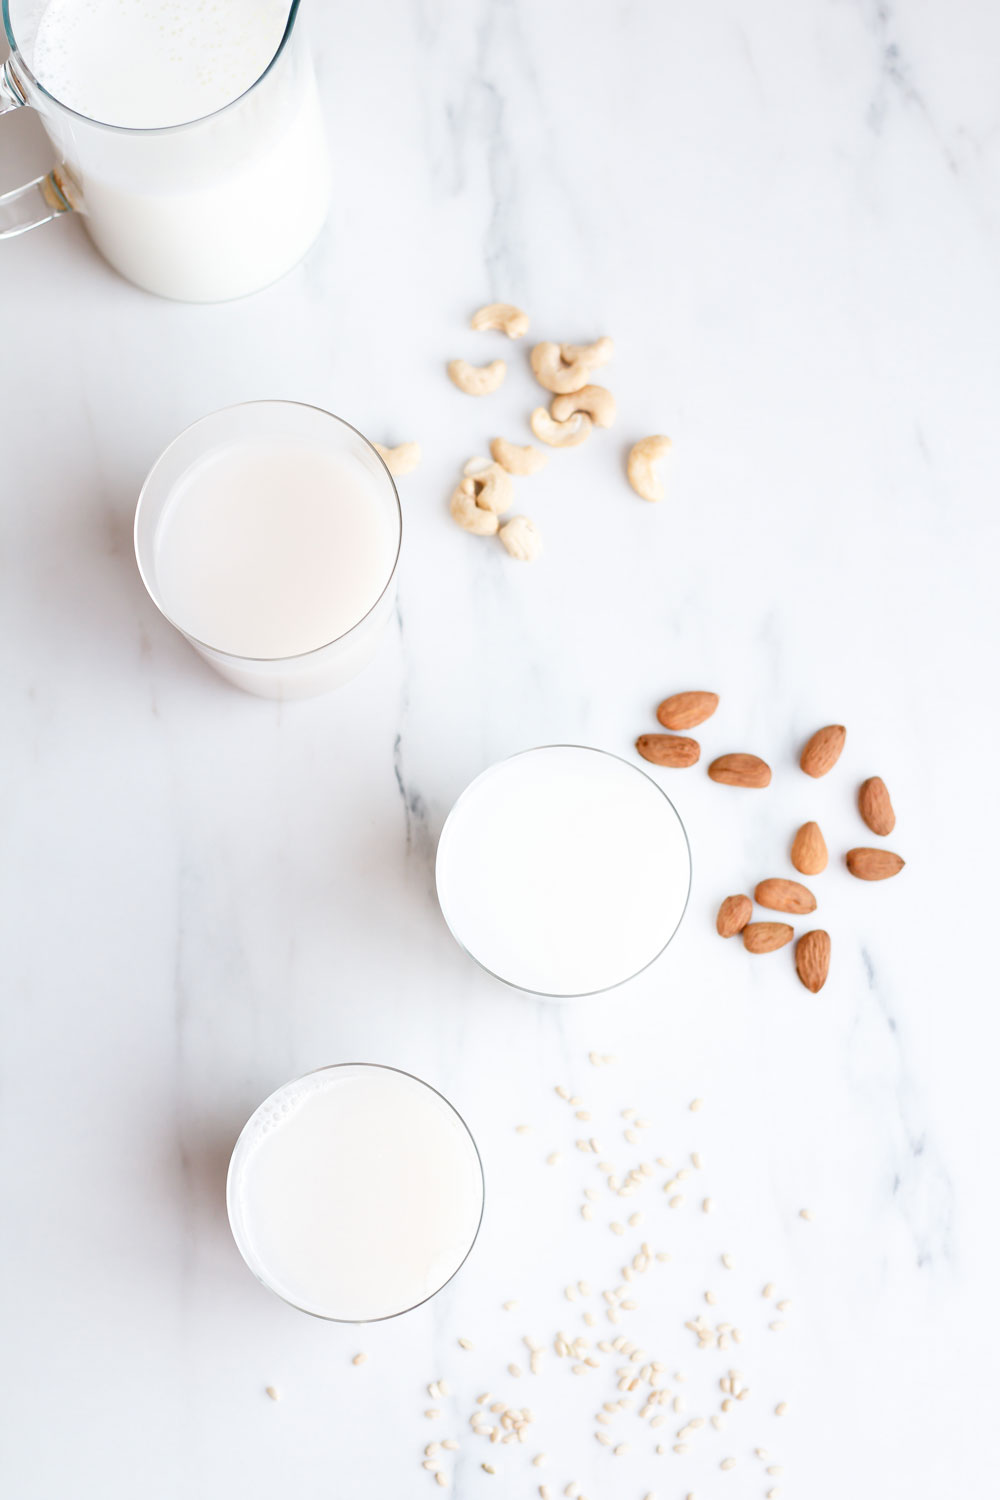 How to Make Healthy Plant-Based Milks: Vegan and Lactose-Intolerant alternatives to change up your routine and add more flavor and healthy nutrients to your diet! https://www.spotebi.com/recipes/healthy-plant-based-milks/